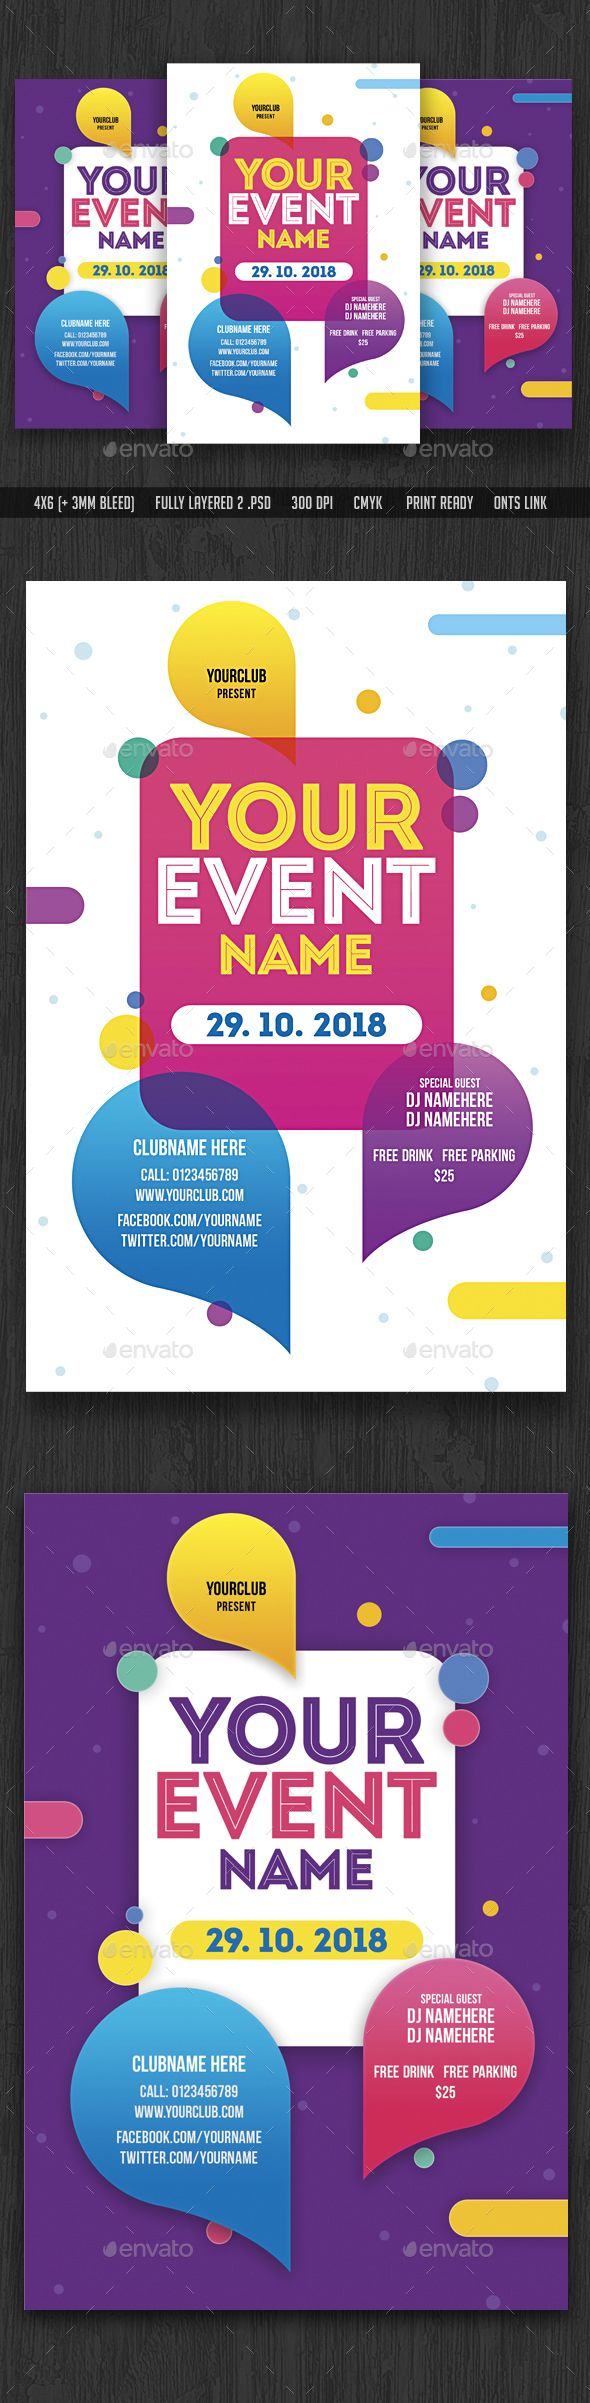 Event Flyer Template — Photoshop PSD #black party #champagne • Download ➝ https://graphicriver.net/item/event-flyer-template/19736319?ref=pxcr